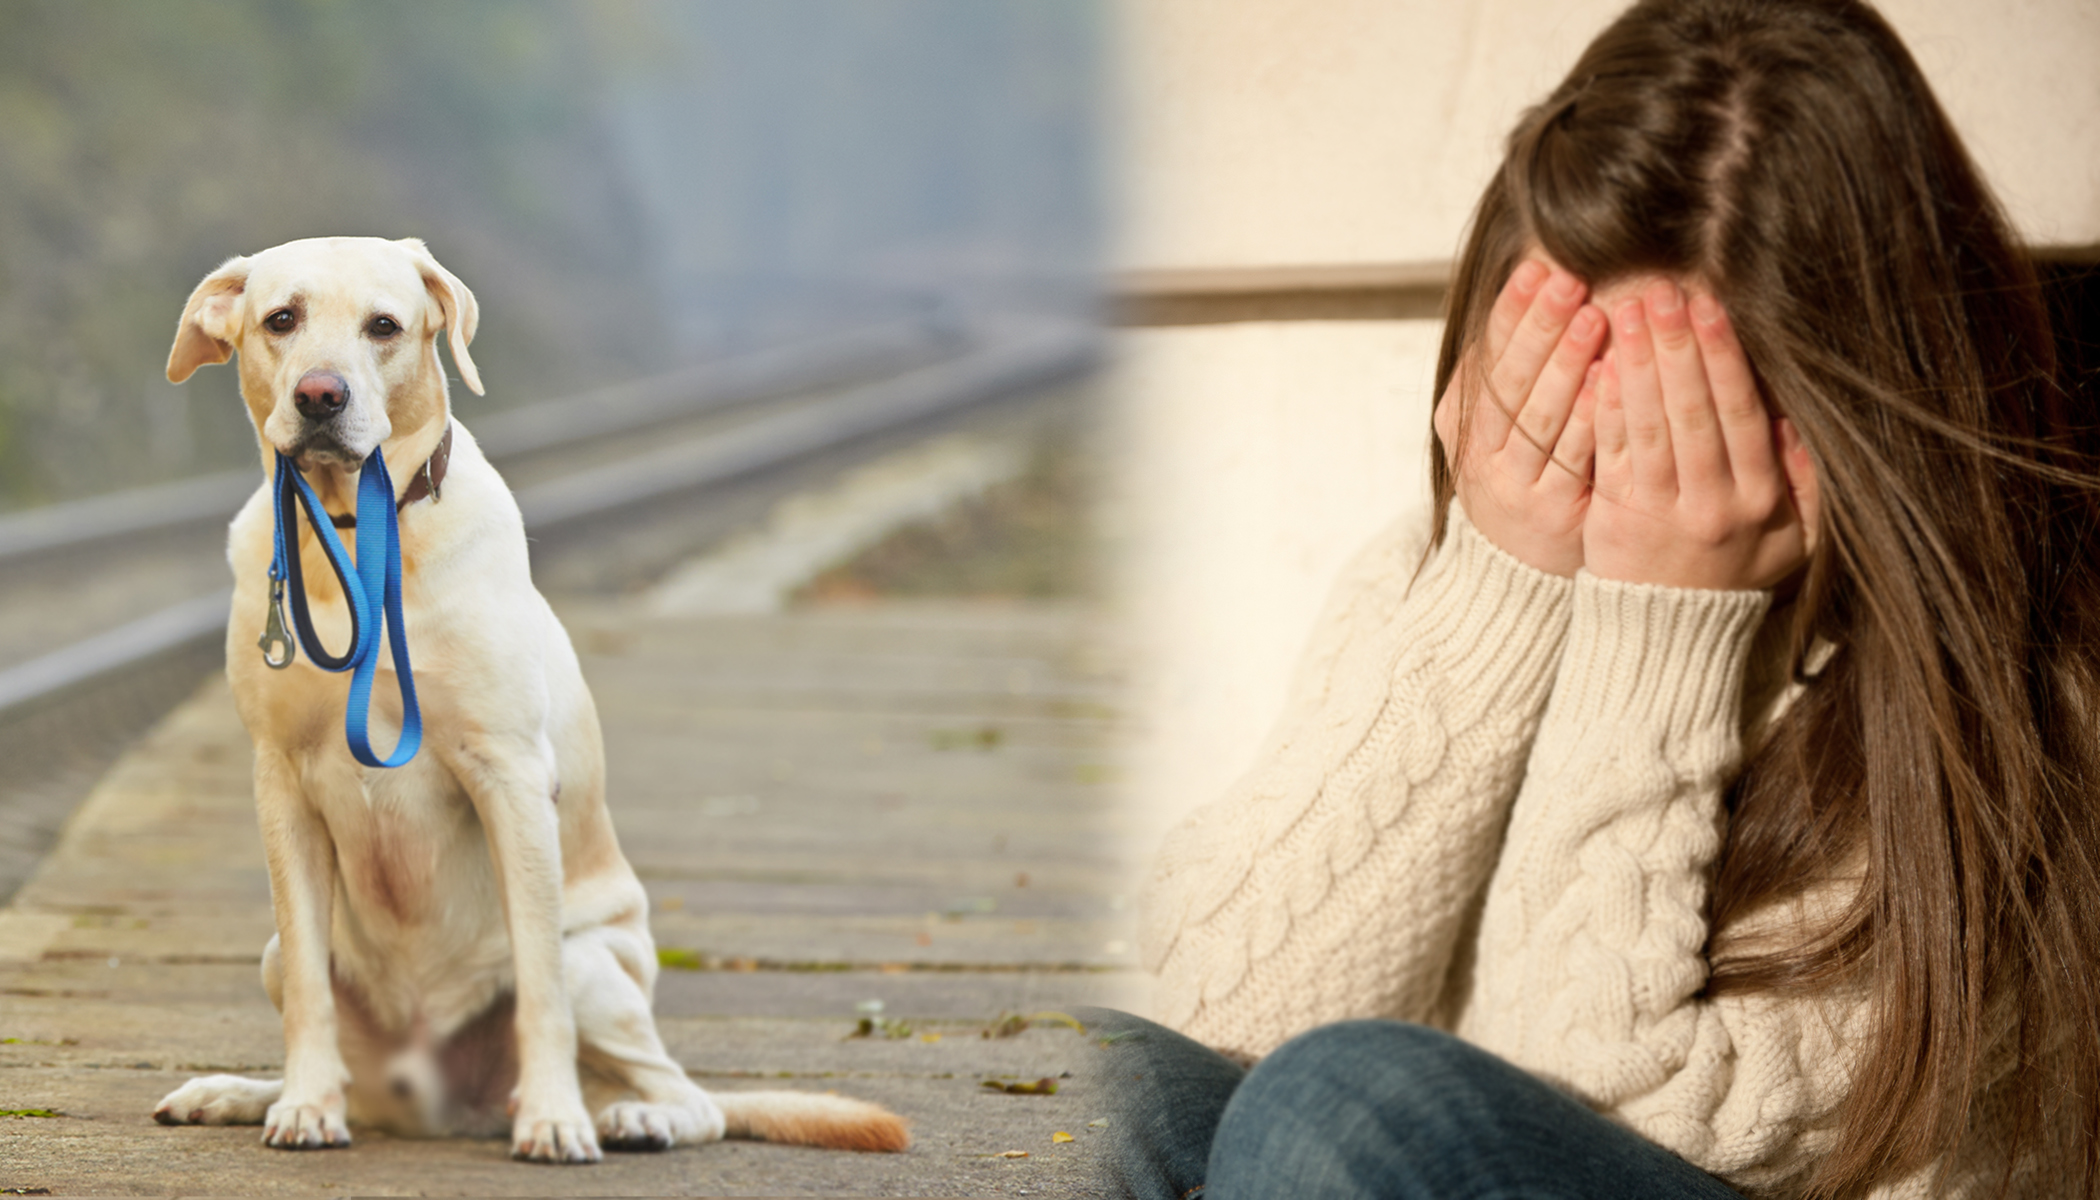 Losing Your Pet Can Be Heartbreaking, Here Are Some Hints on How to Cope